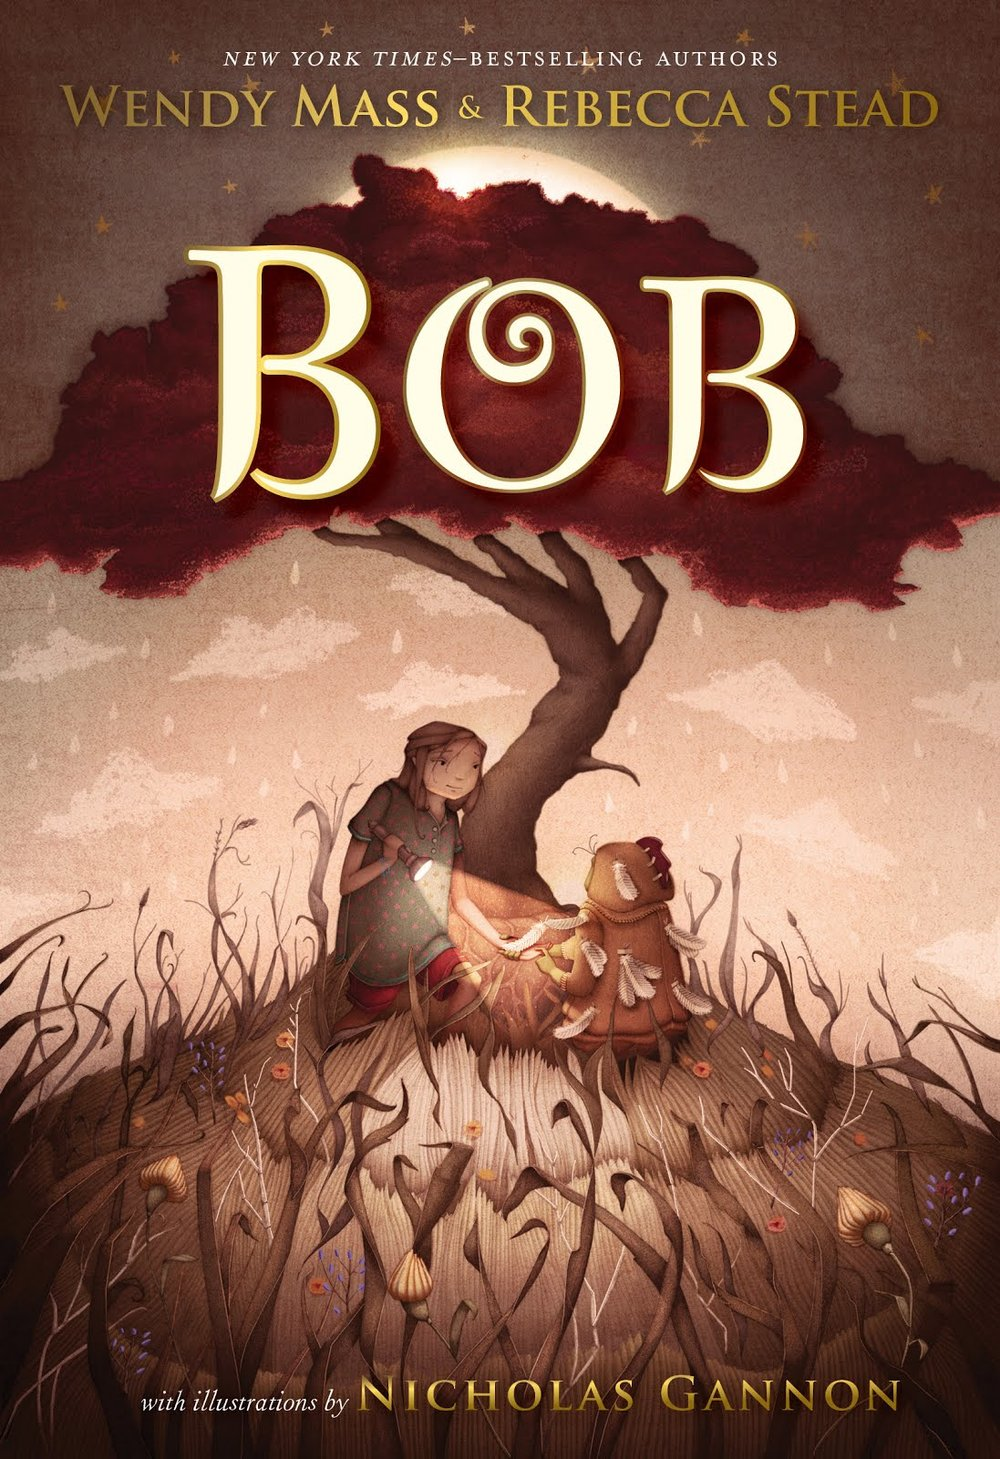 Bob  by Wendy Mass and Rebecca Stead  Feiwel & Friends --- May 1, 2018